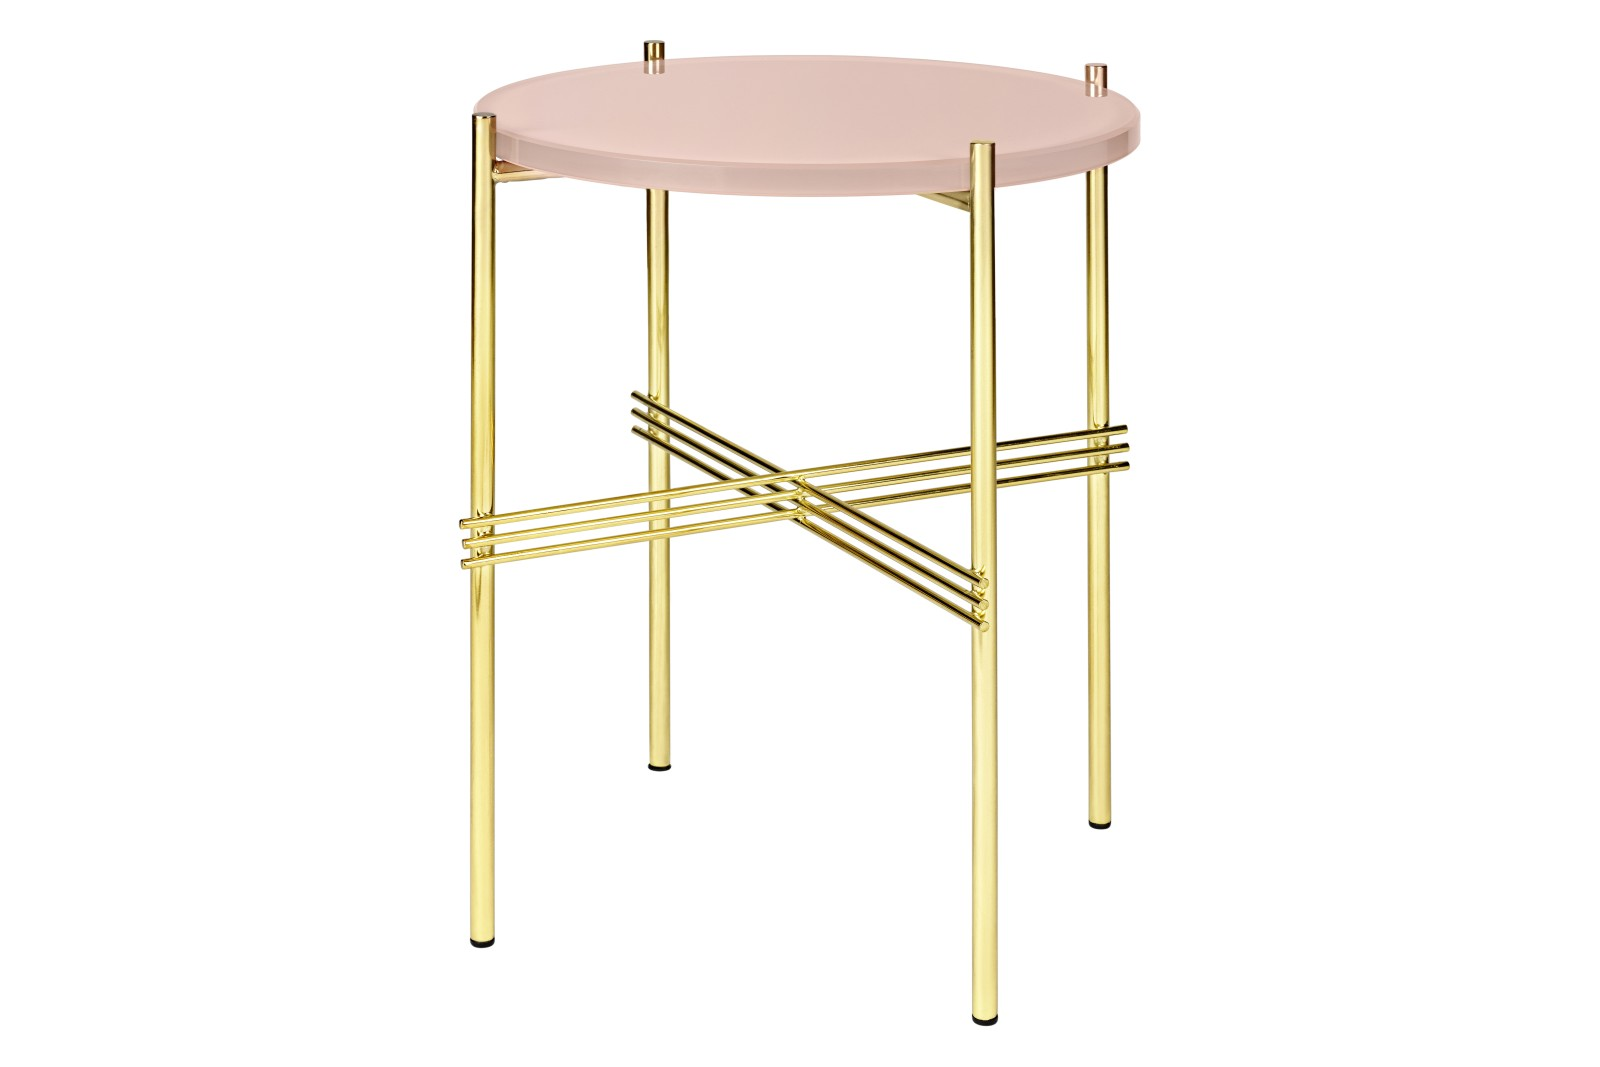 TS Round Side Table with Glass Top Vintage Red Top and Brass Frame, 0 40 x 51 cm